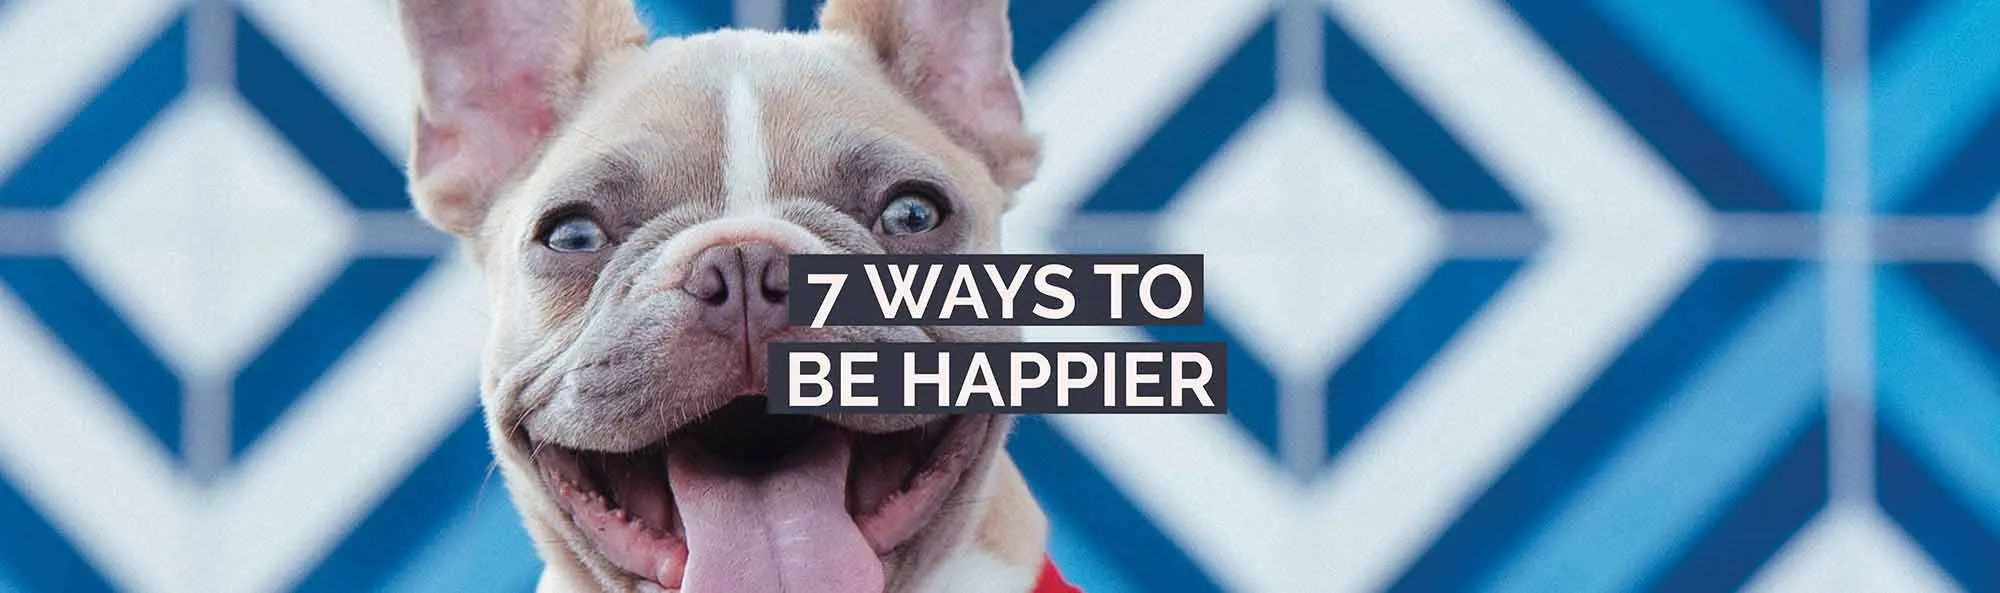 how to be happy 7 ways to be happier